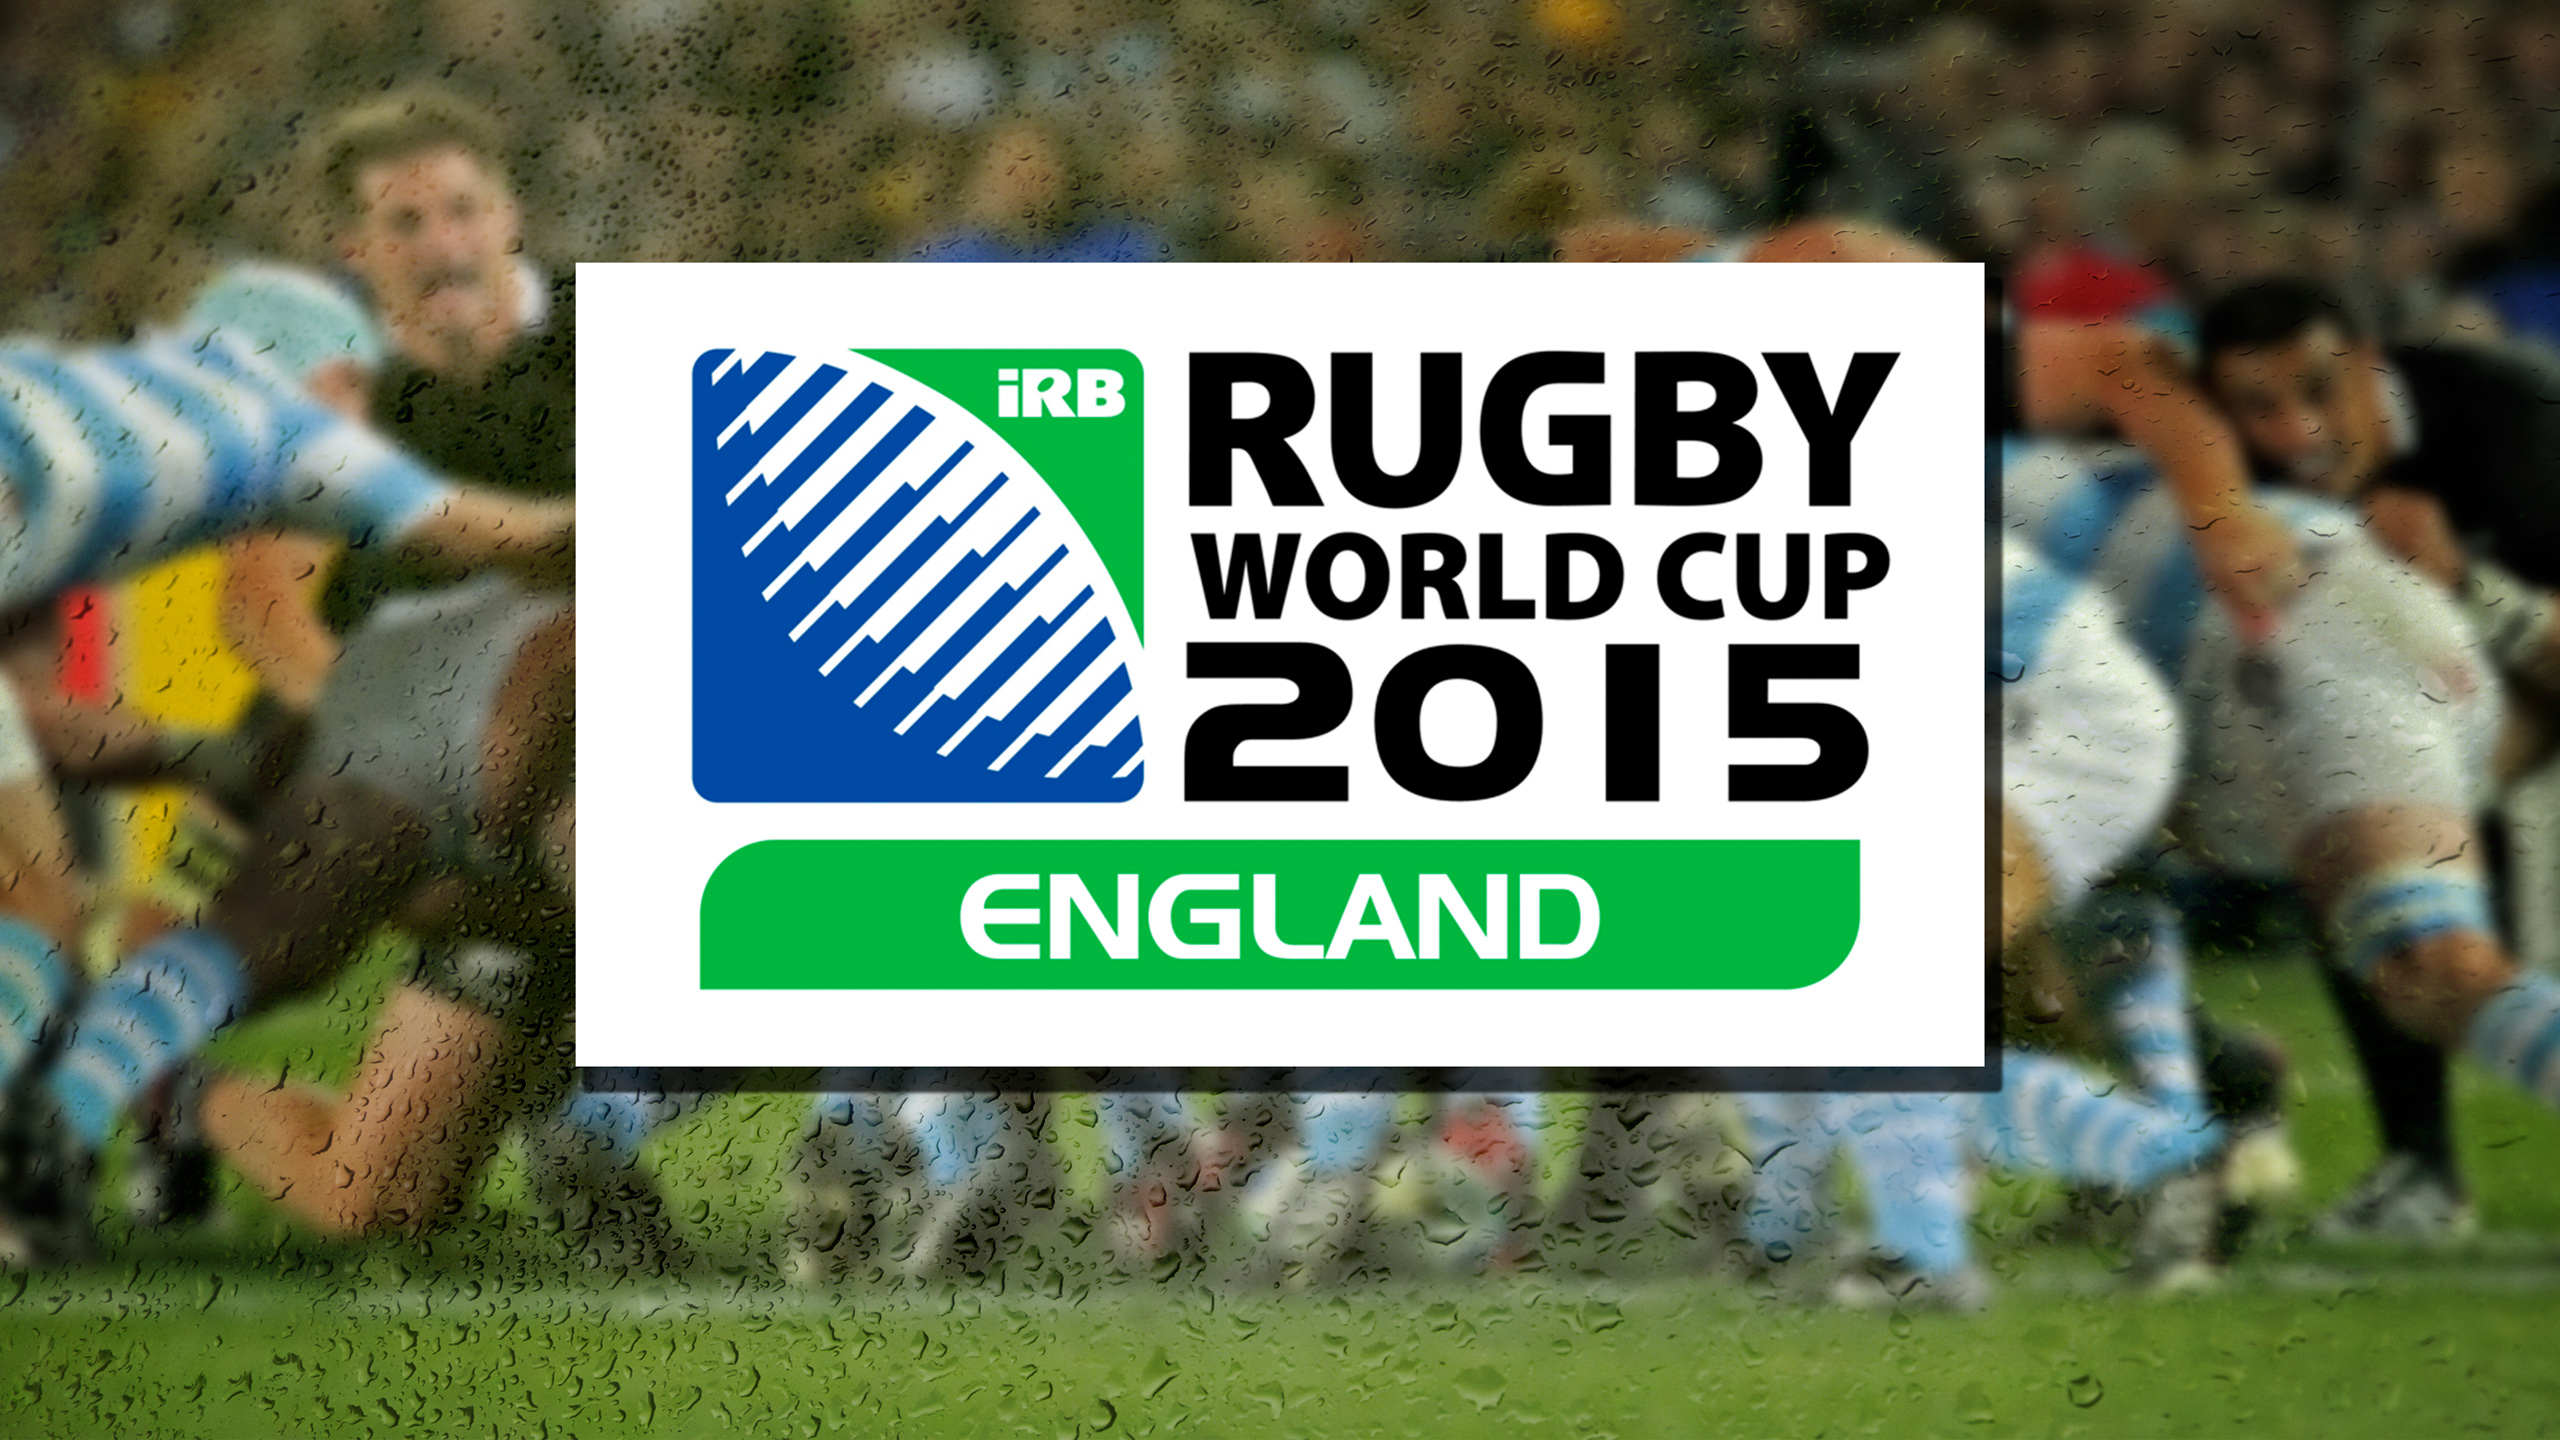 2560x1440 - Rugby World Cup 2015 Wallpapers 6